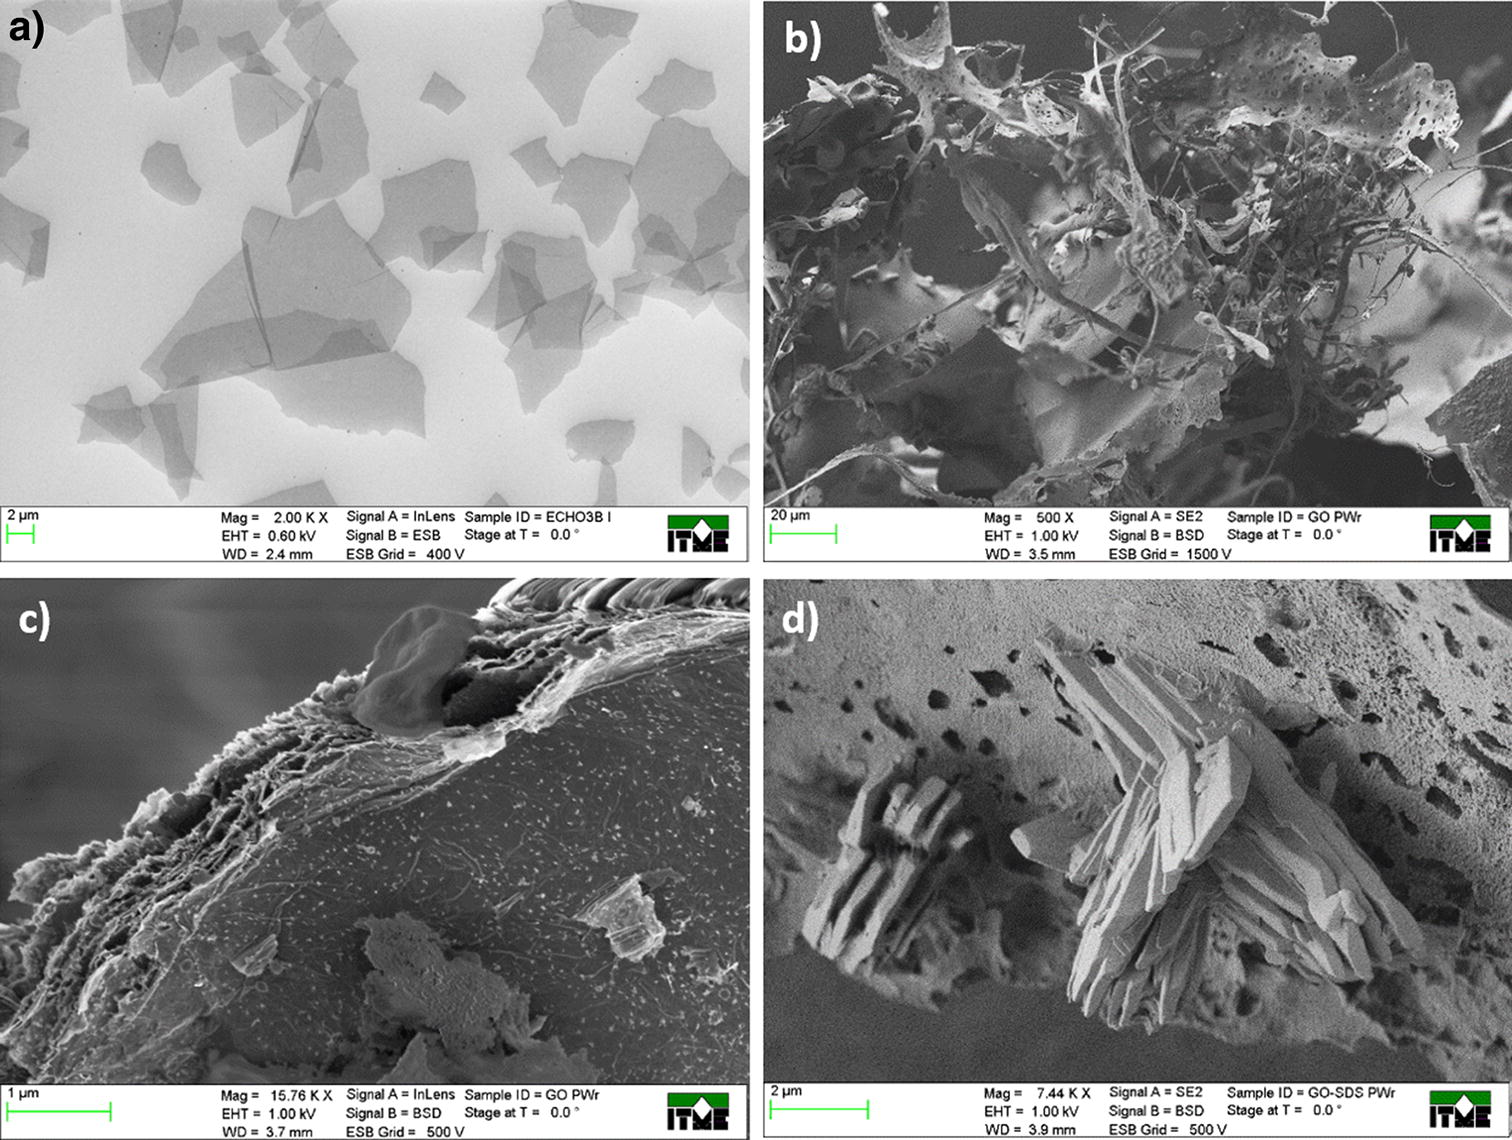 Influence of graphene oxide nanofluids and surfactant on thermal